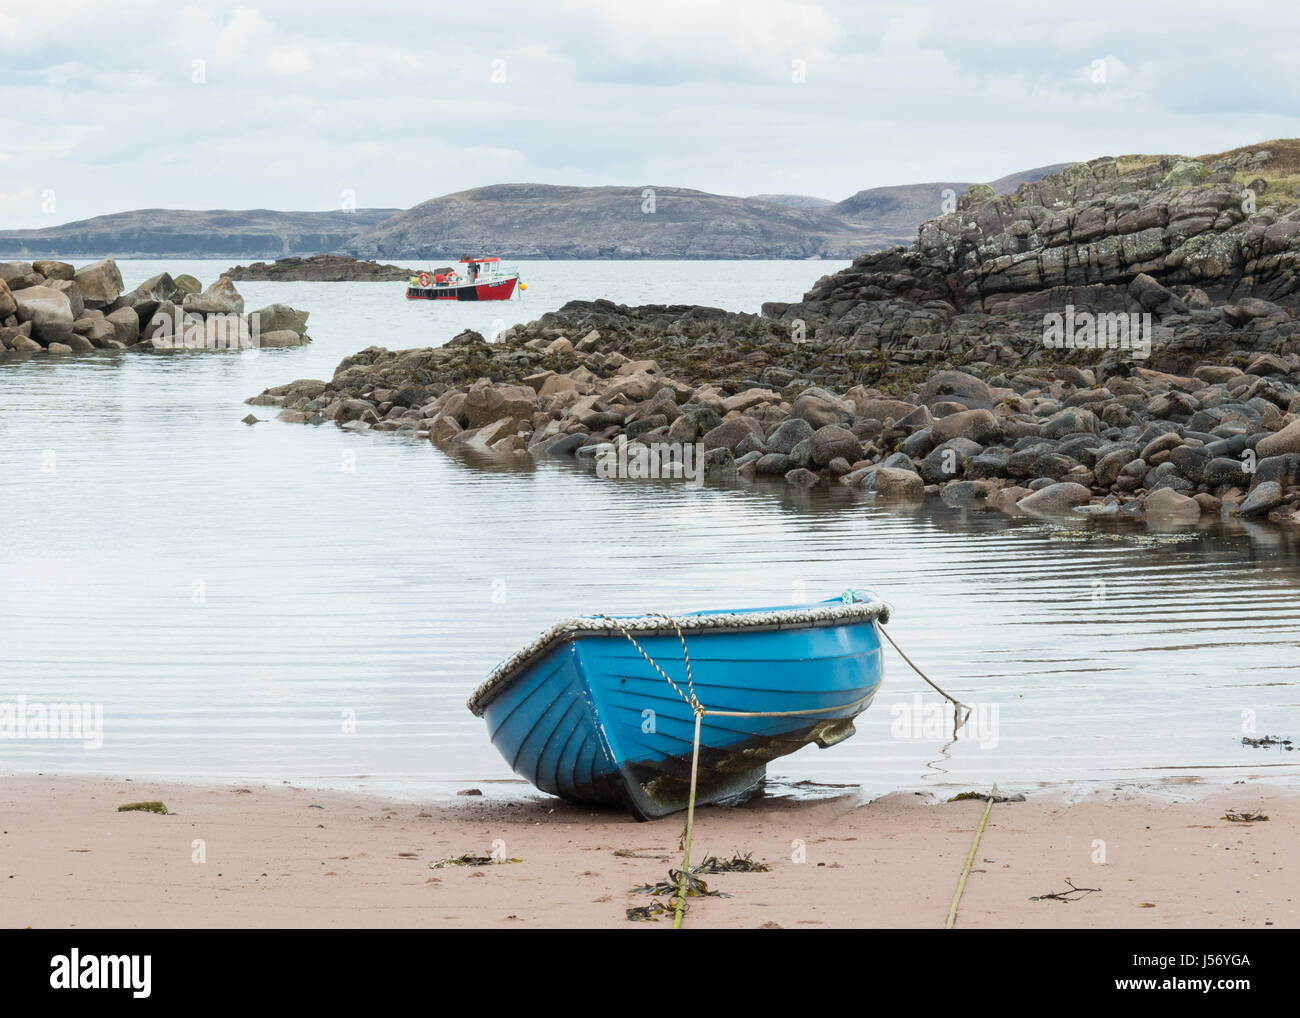 Bateaux sur Loch Ewe - Cove Harbour, Poolewe, Wester Ross, Highland, Scotland, UK Photo Stock